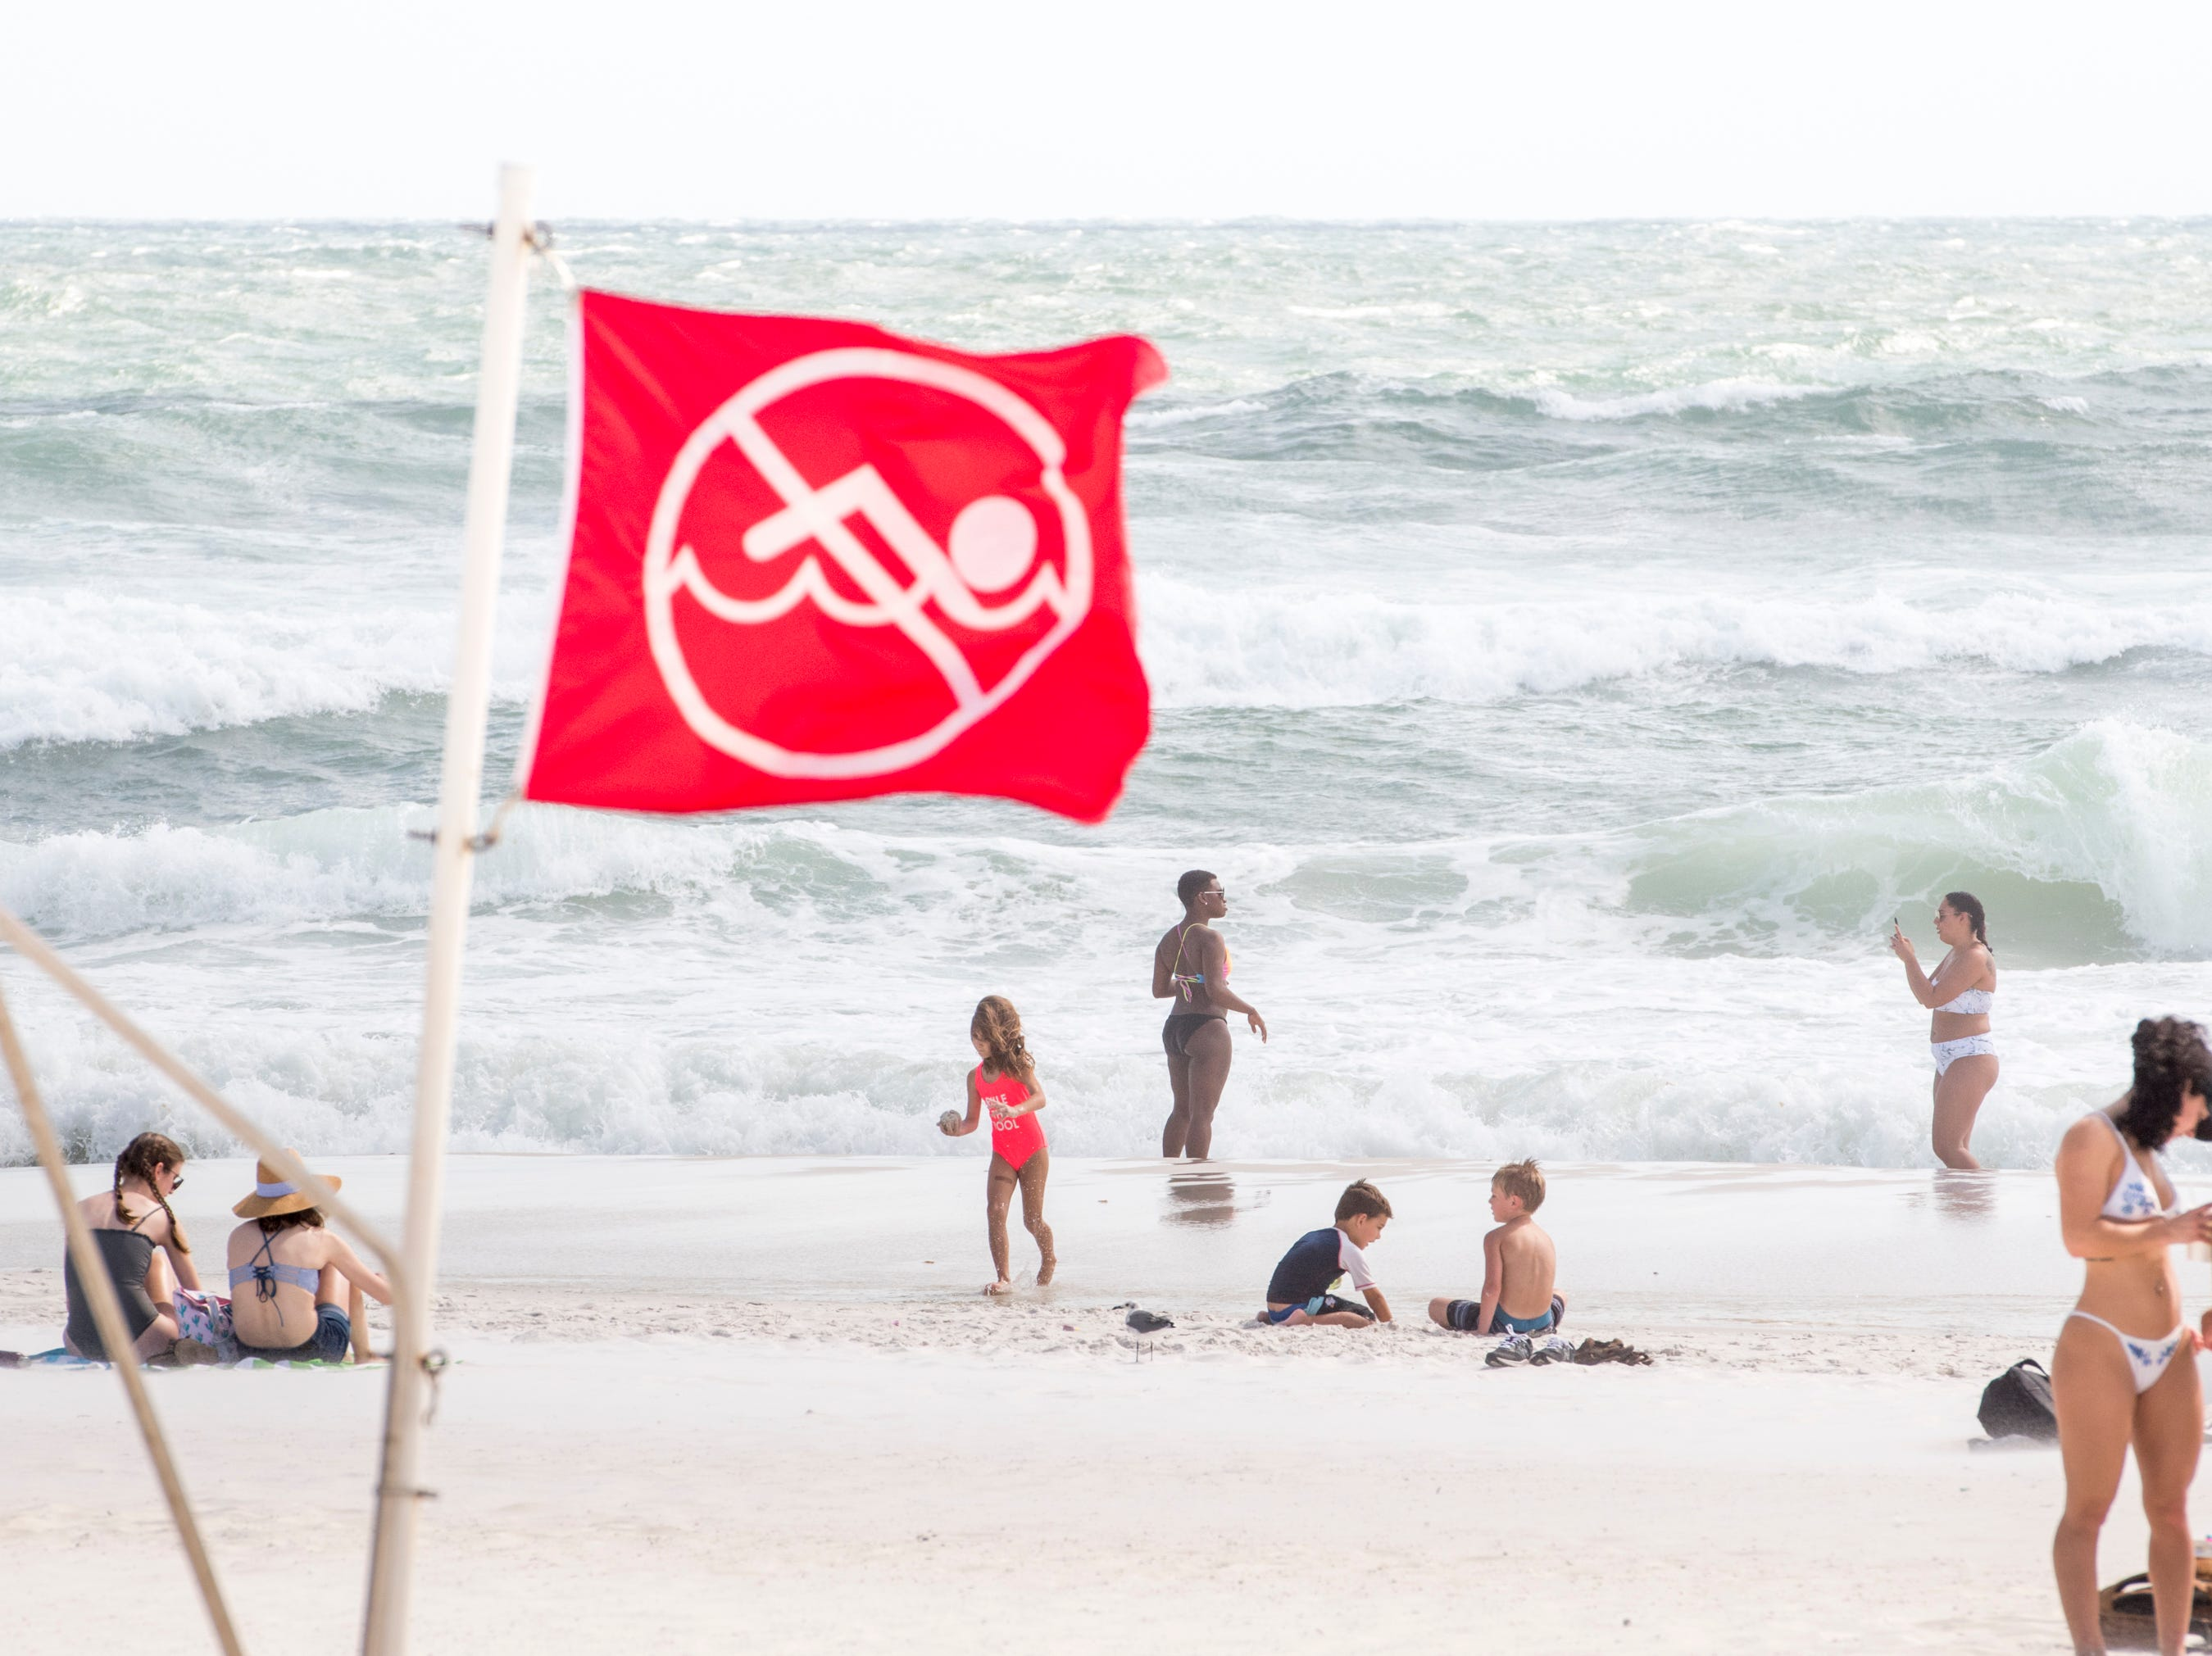 Even though no swimming is allowed in the Gulf of Mexico, beachgoers still enjoy themselves as Huricane Michael approaches the Florida panhandle on Monday, October 8, 2018.